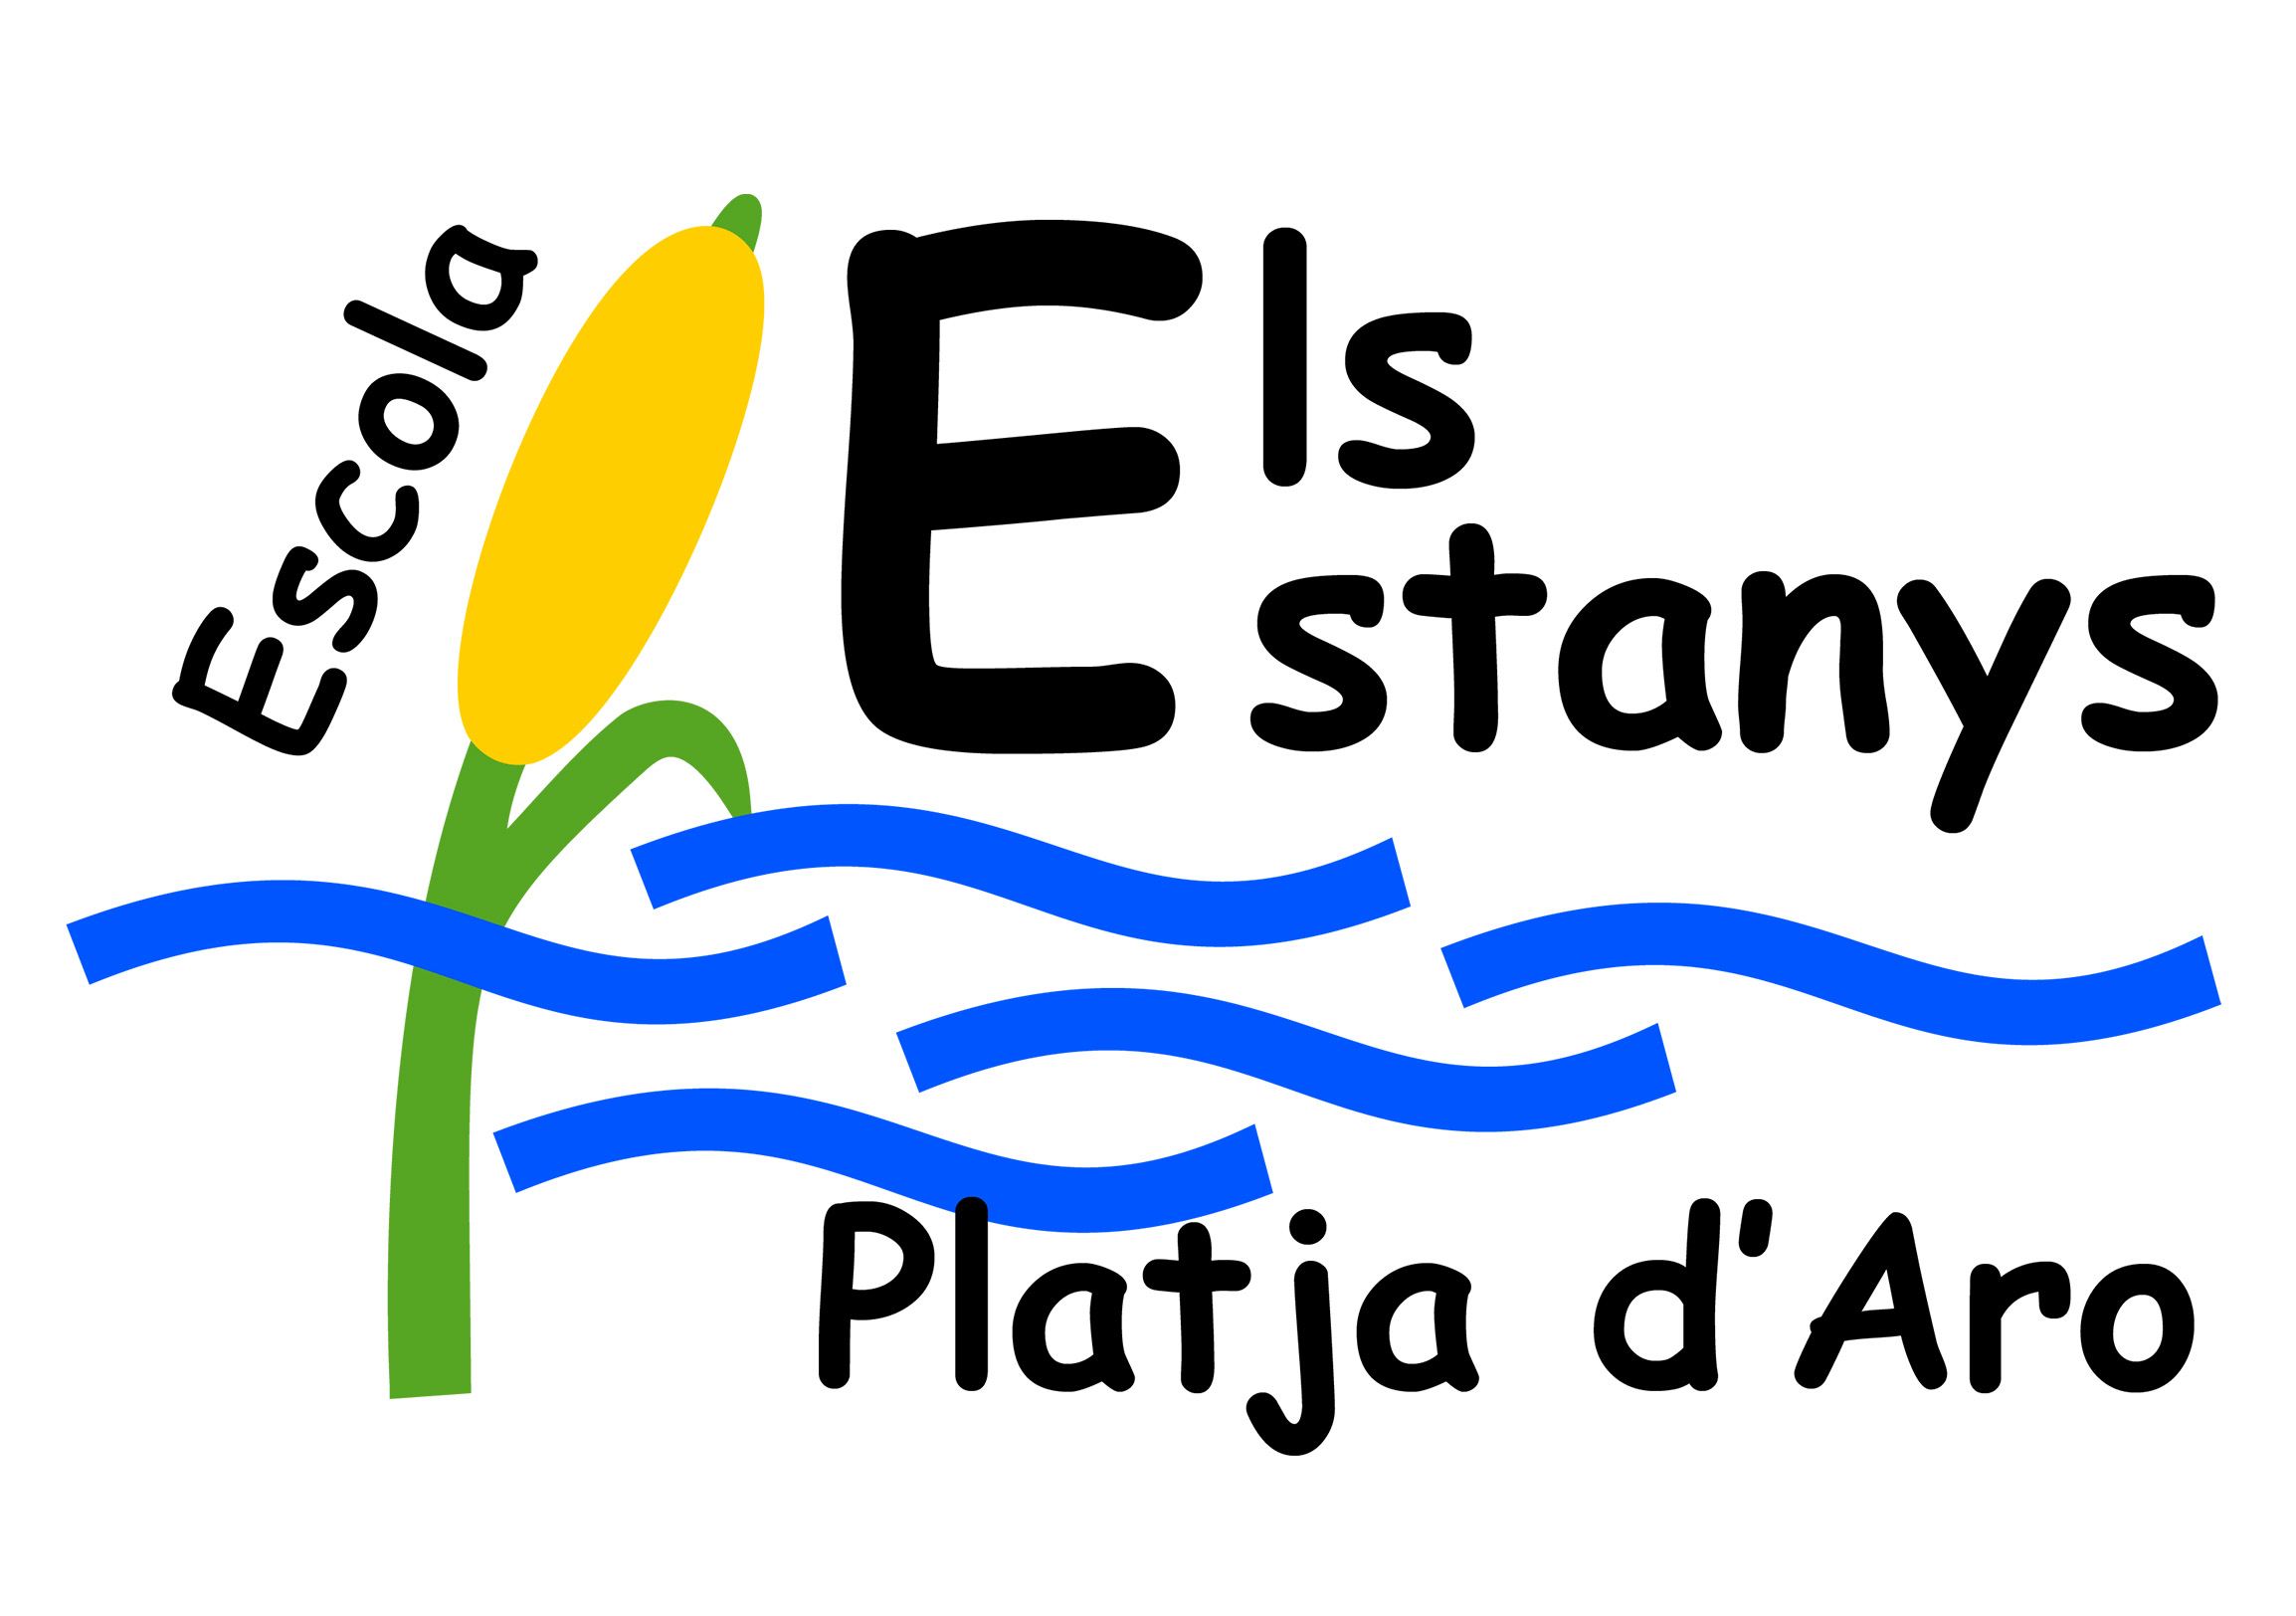 LogoEscolaElsEstanys